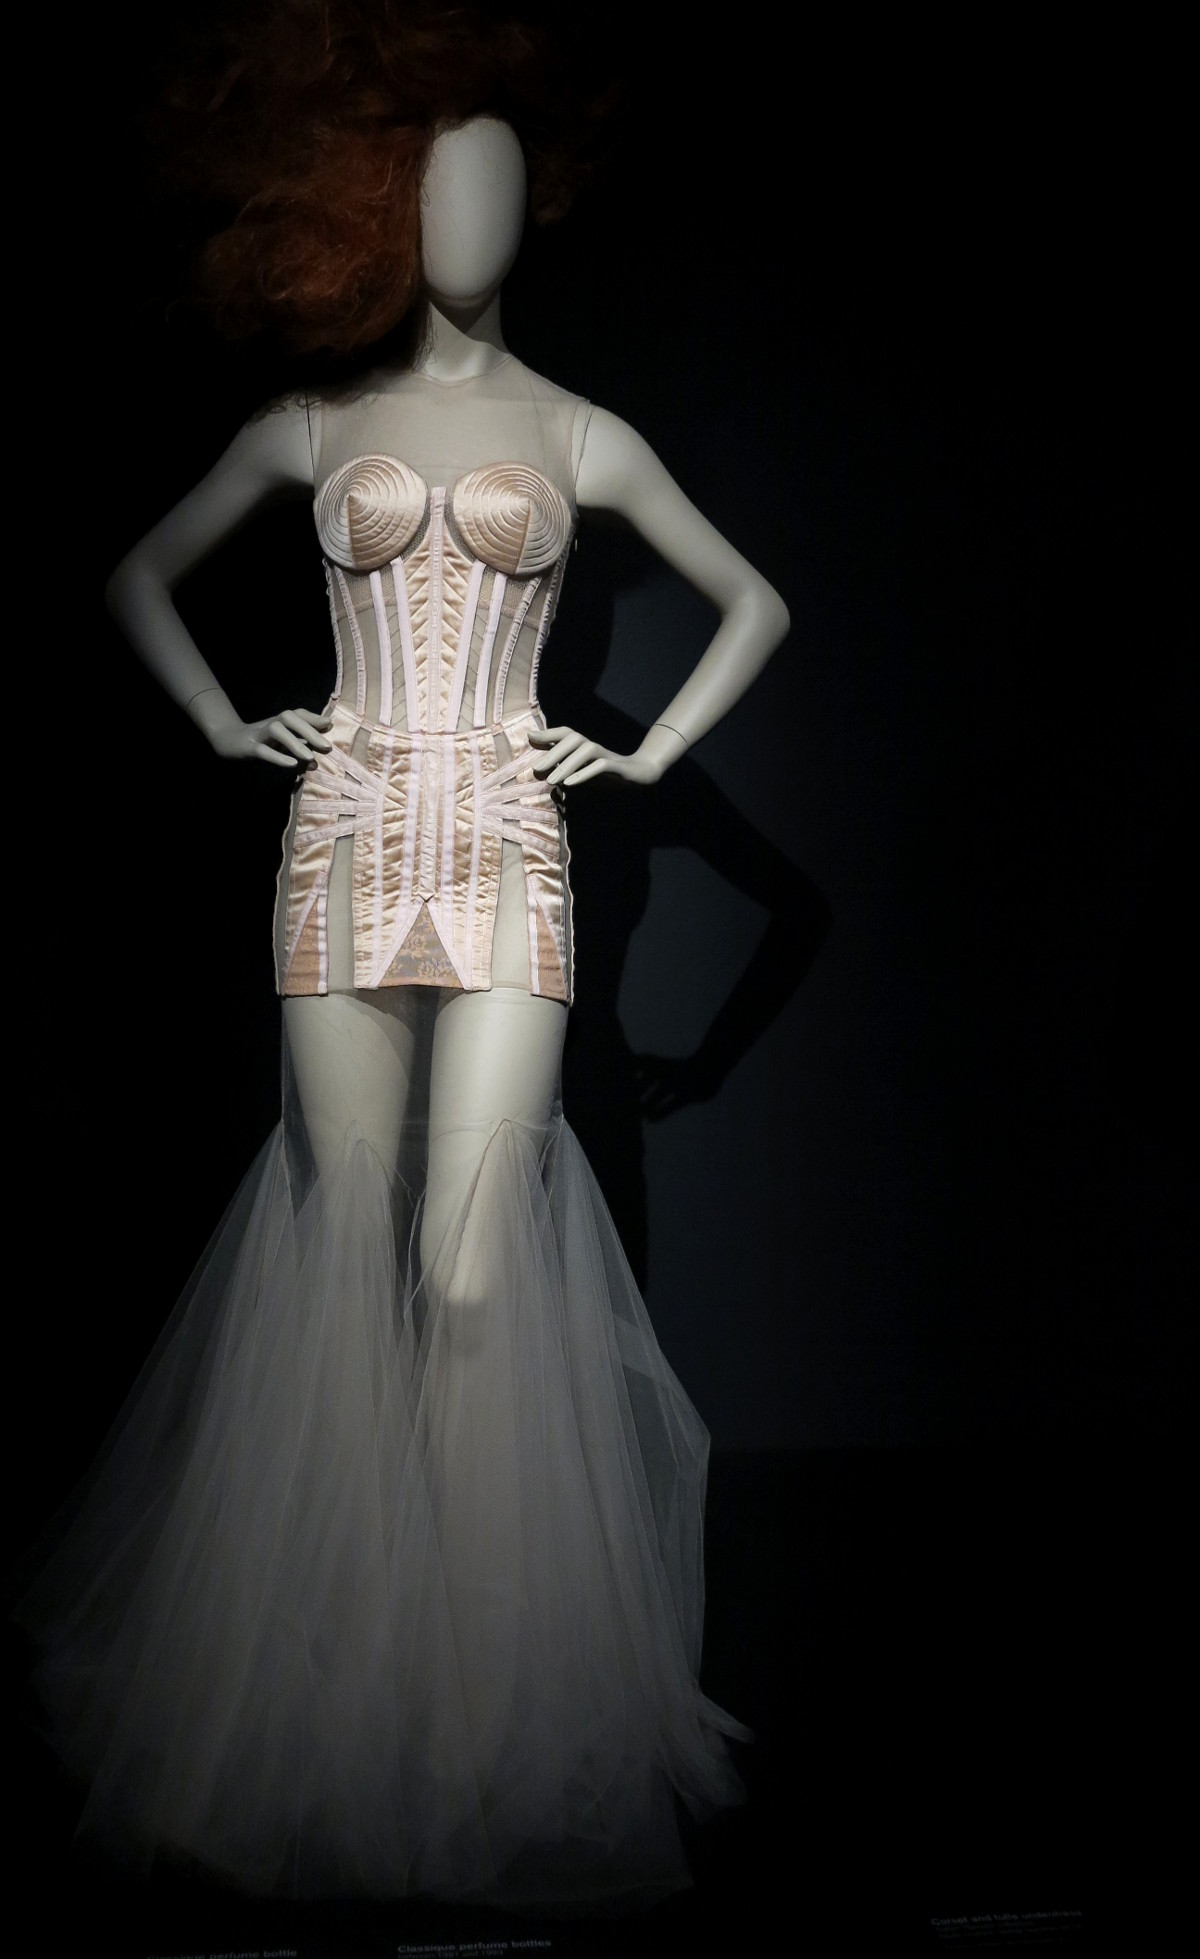 Perfume bottle dress Jean Paul Gaultier National Gallery of Victoria